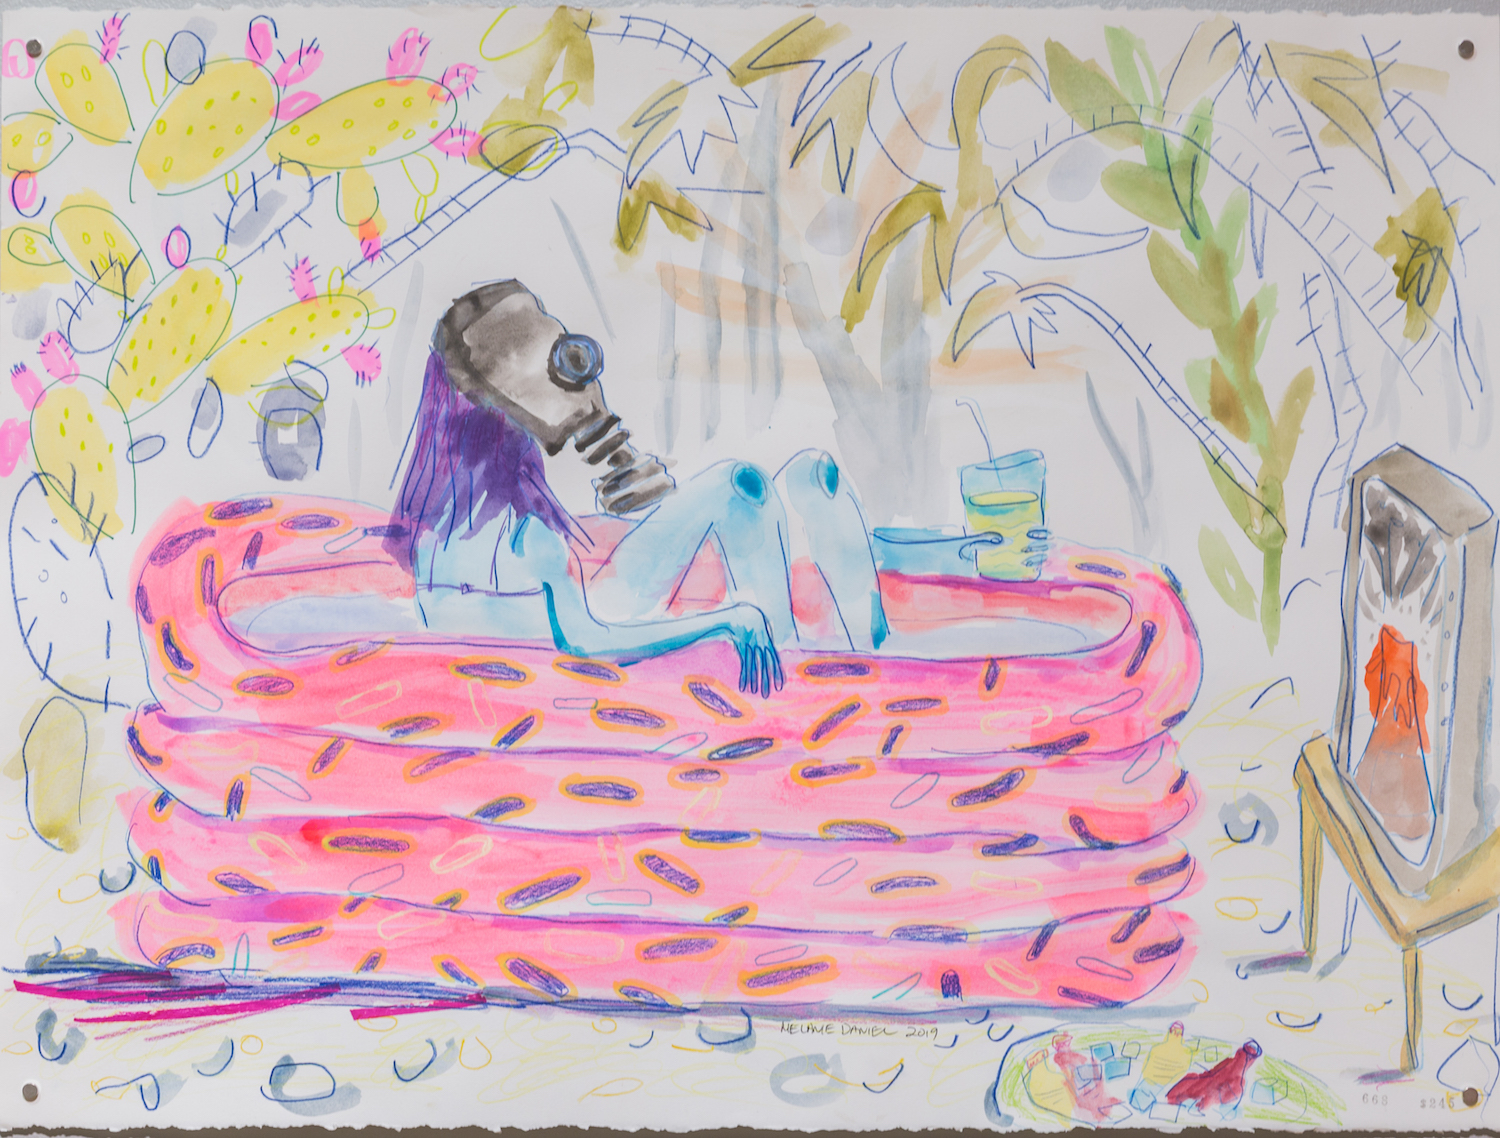 Pool Party, 2019, coloured pencil and ink on paper, 11 X 14 inches